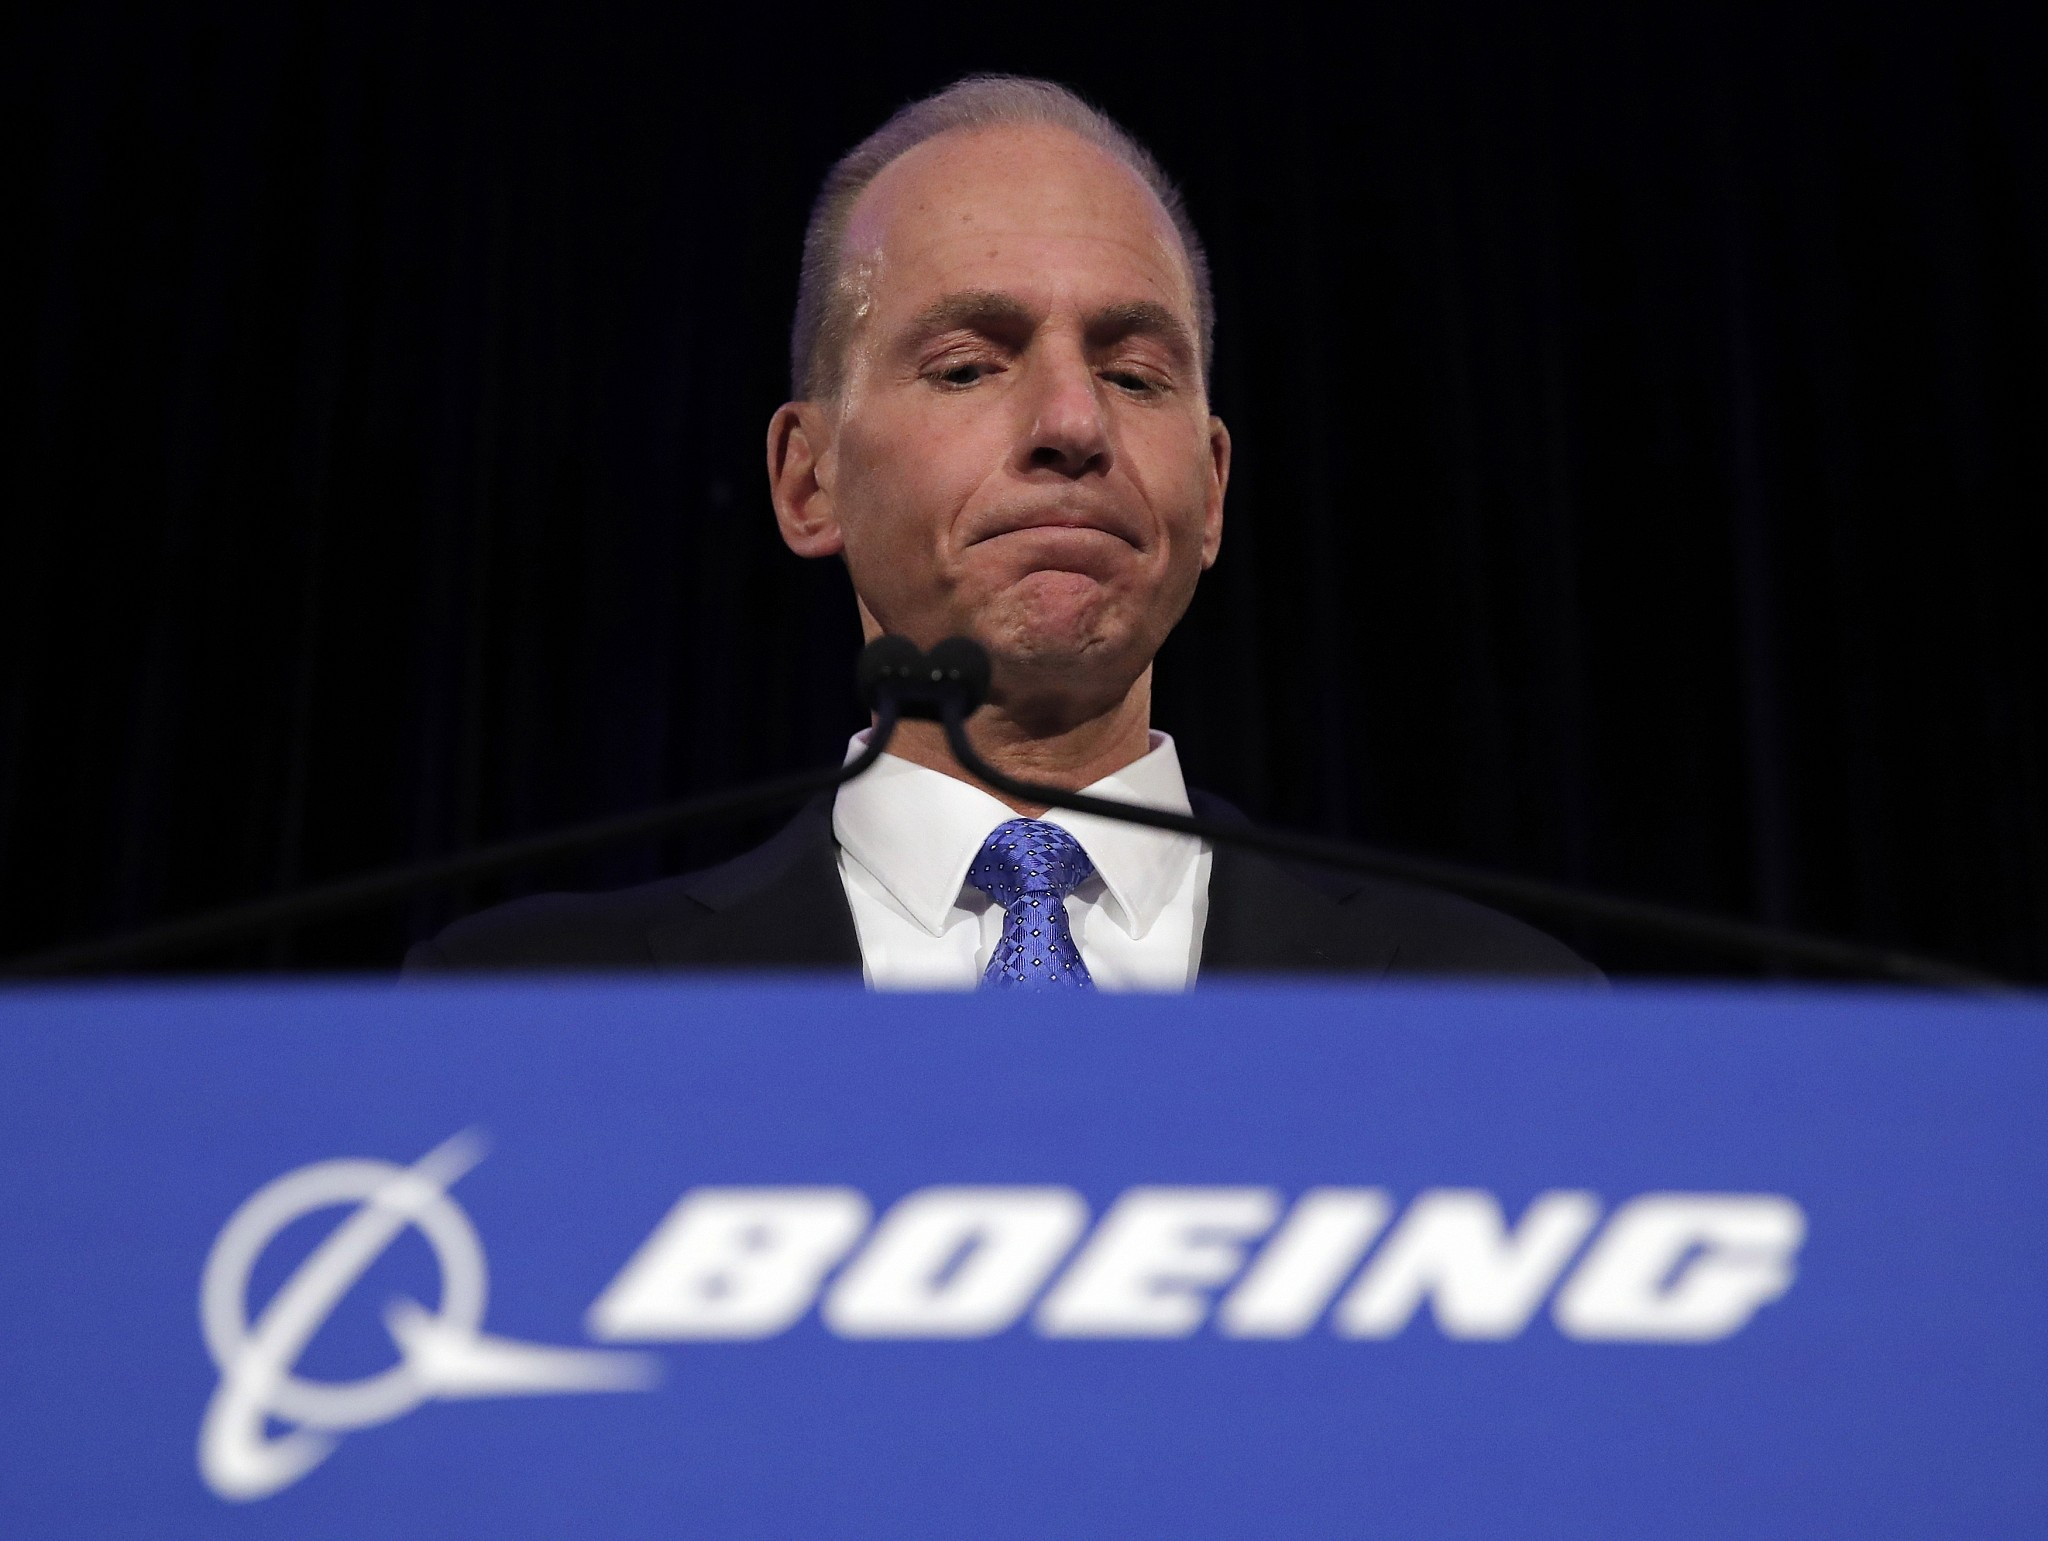 Boeing 737 Max: BA-owner IAG plans to buy 200 planes